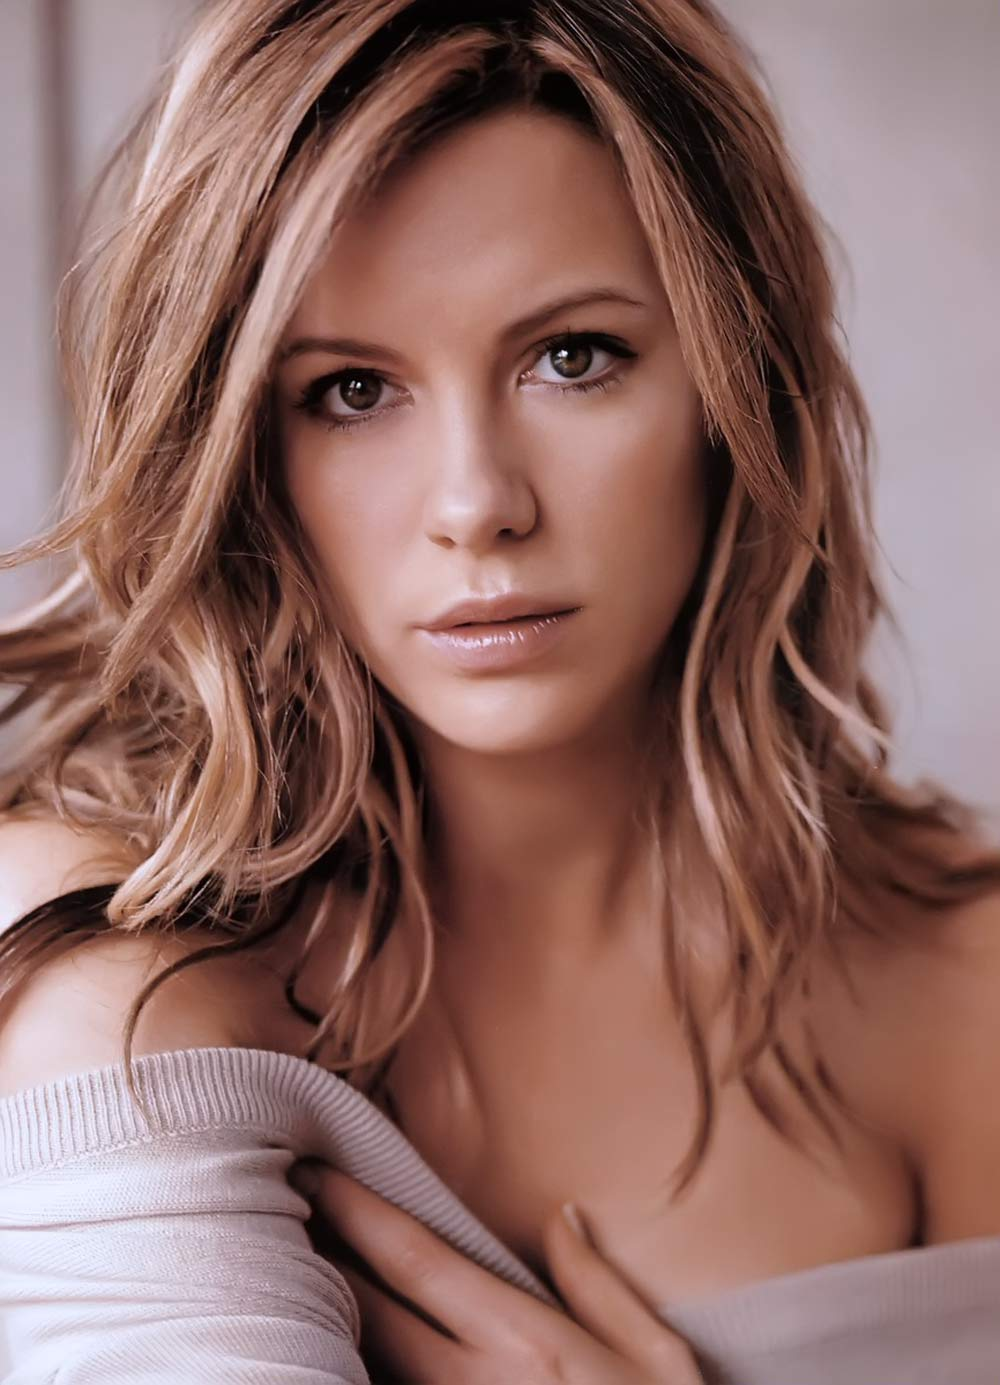 Kate Beckinsale hot photo